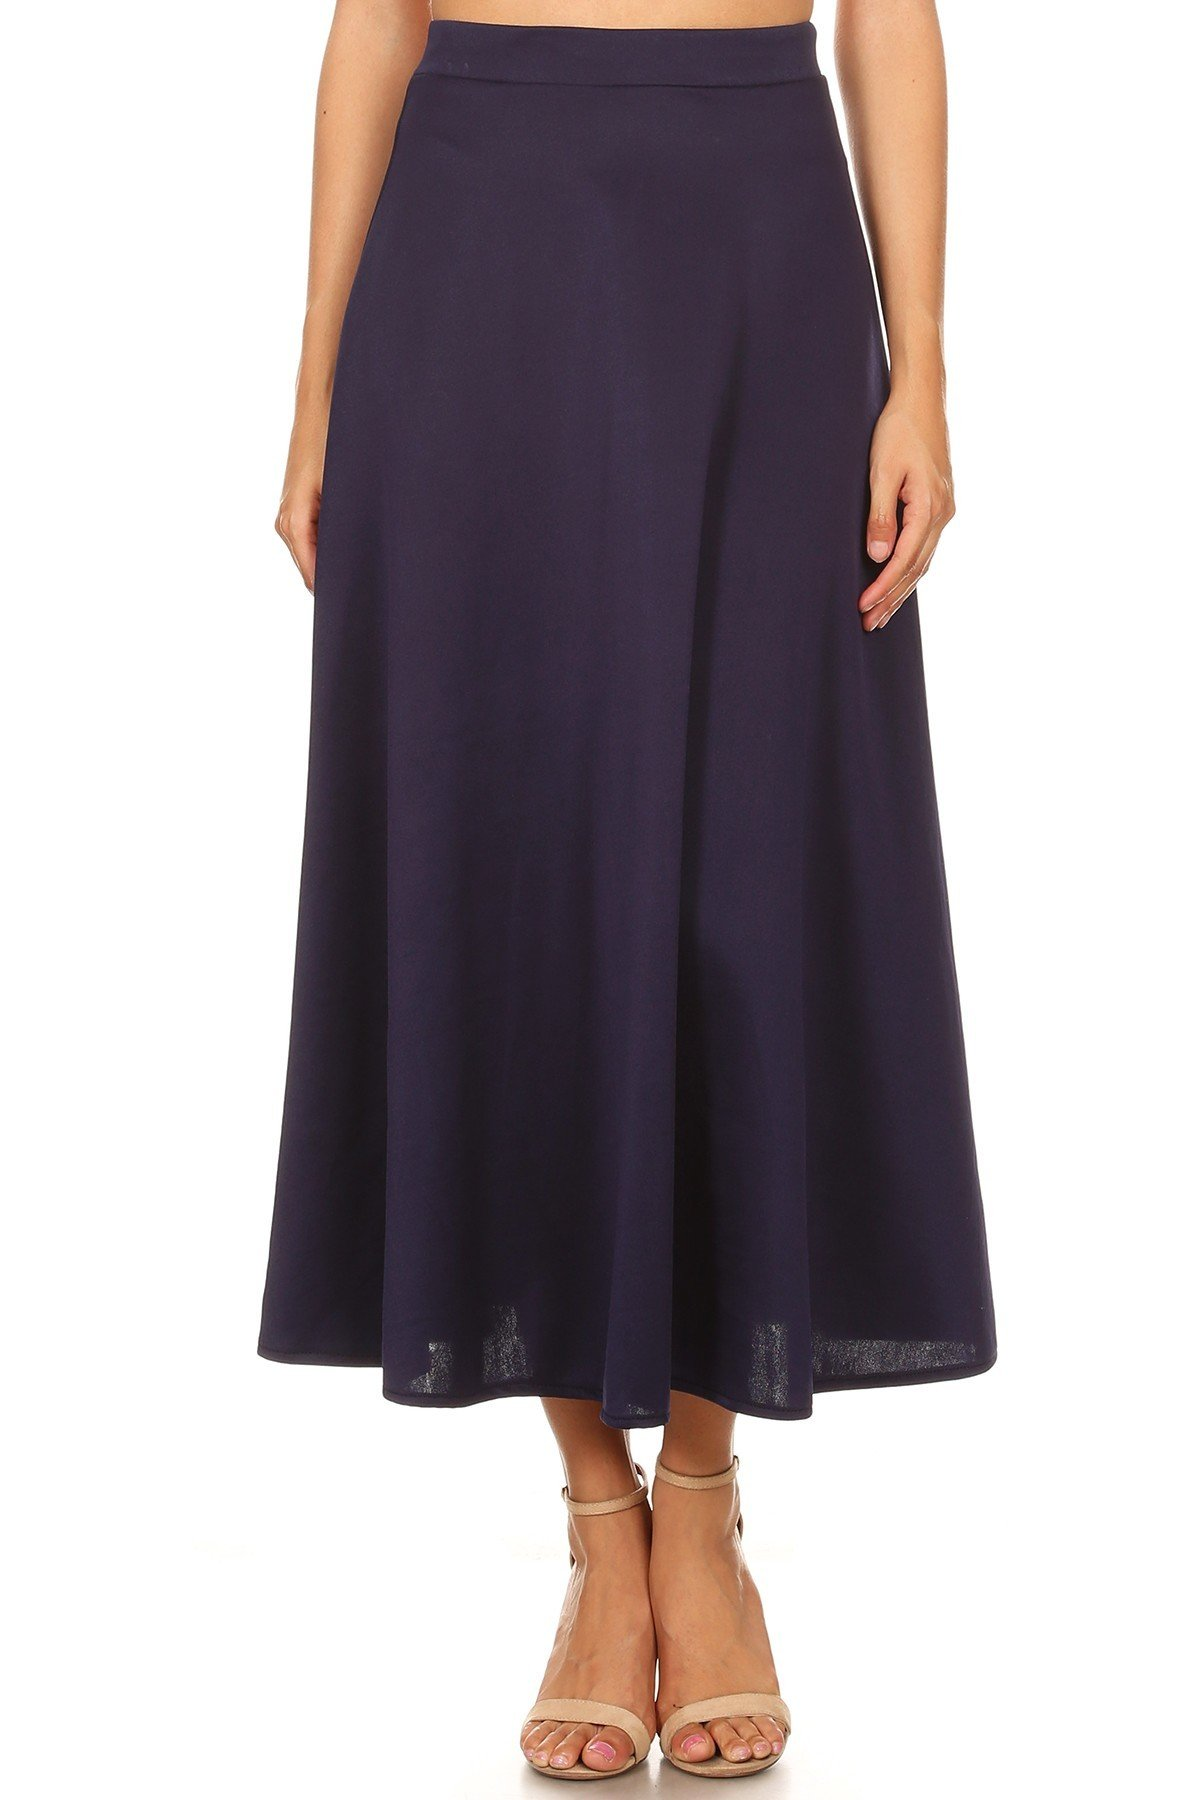 Swing & Sway Skirt Navy Front View